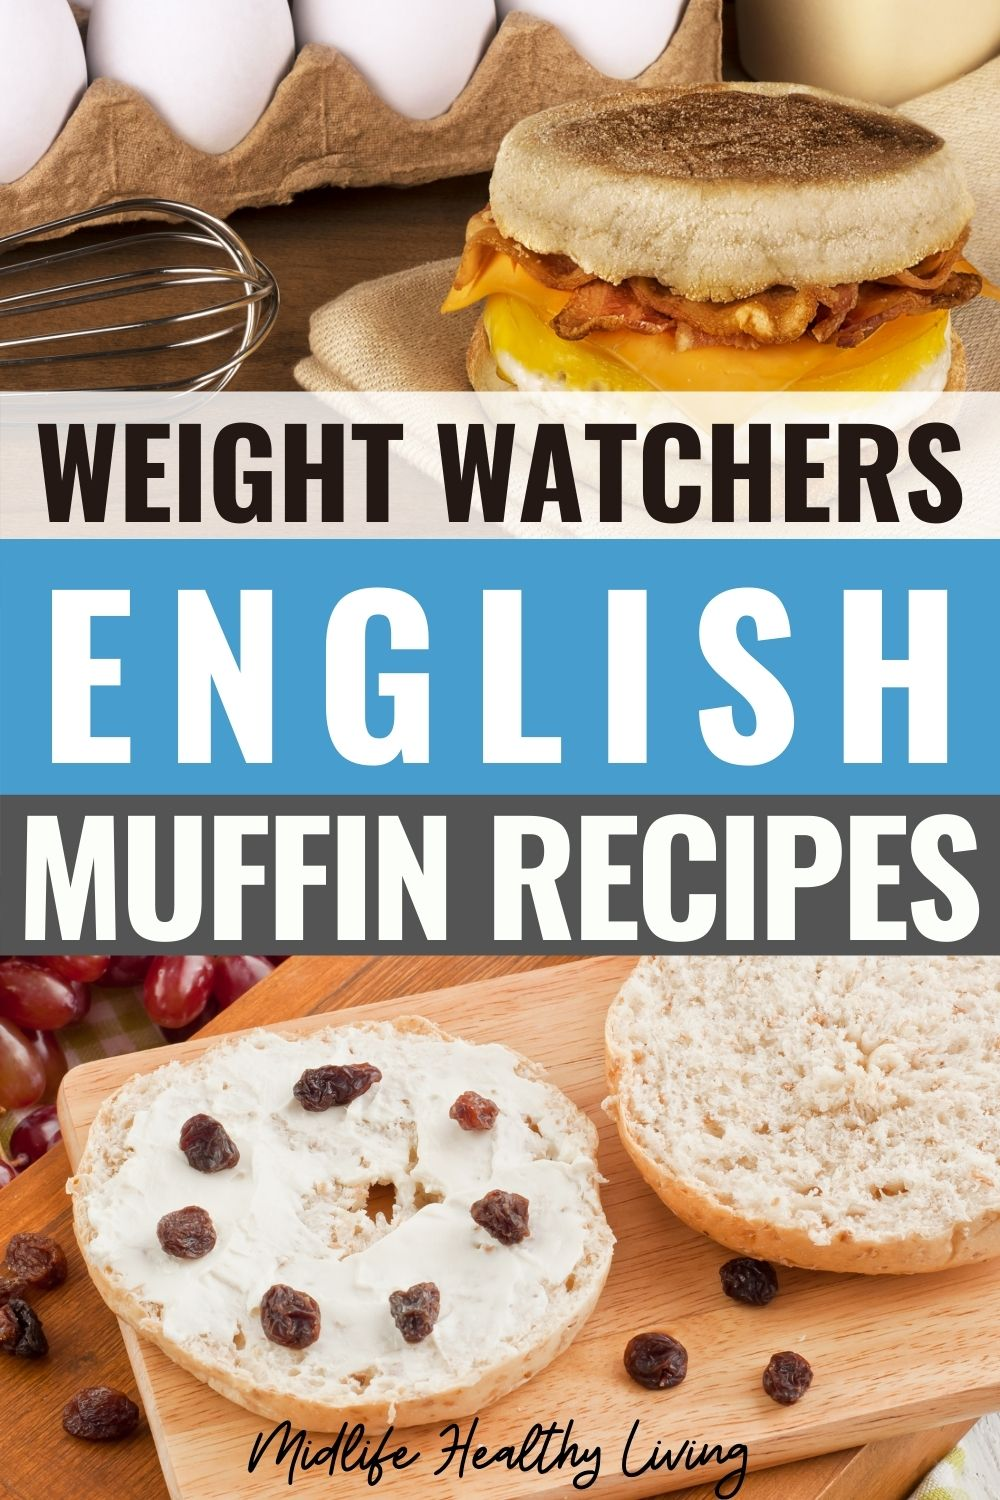 Pin showing the finished weight watchers English muffin recipes ready to eat with title across the middle.